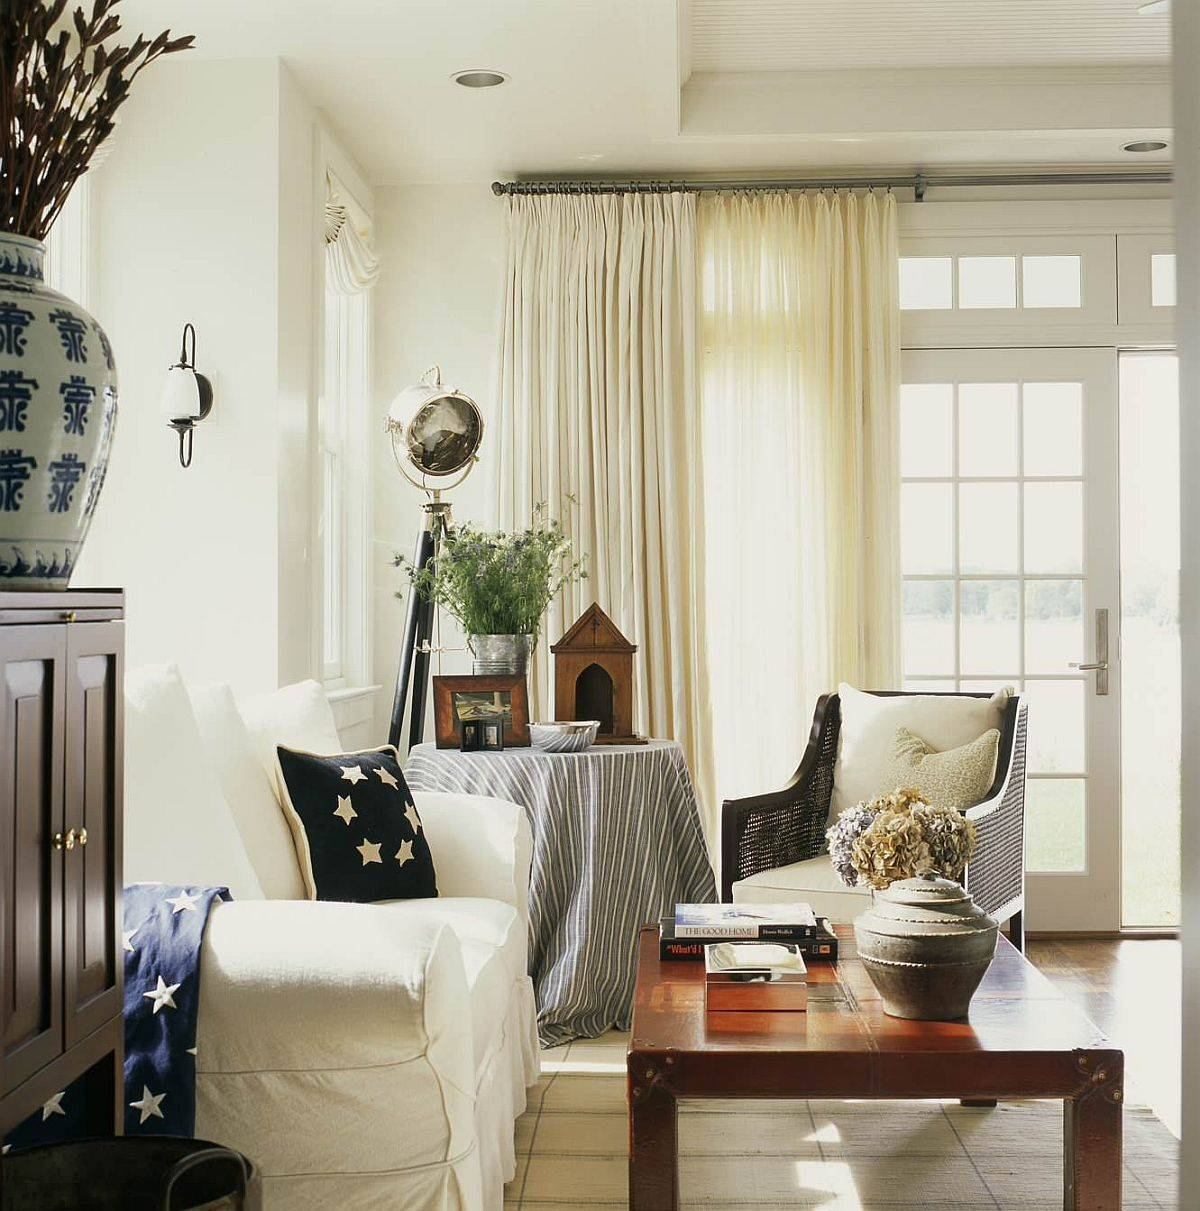 Heavy-drapes-help-seal-in-the-heat-on-cold-winter-days-12634